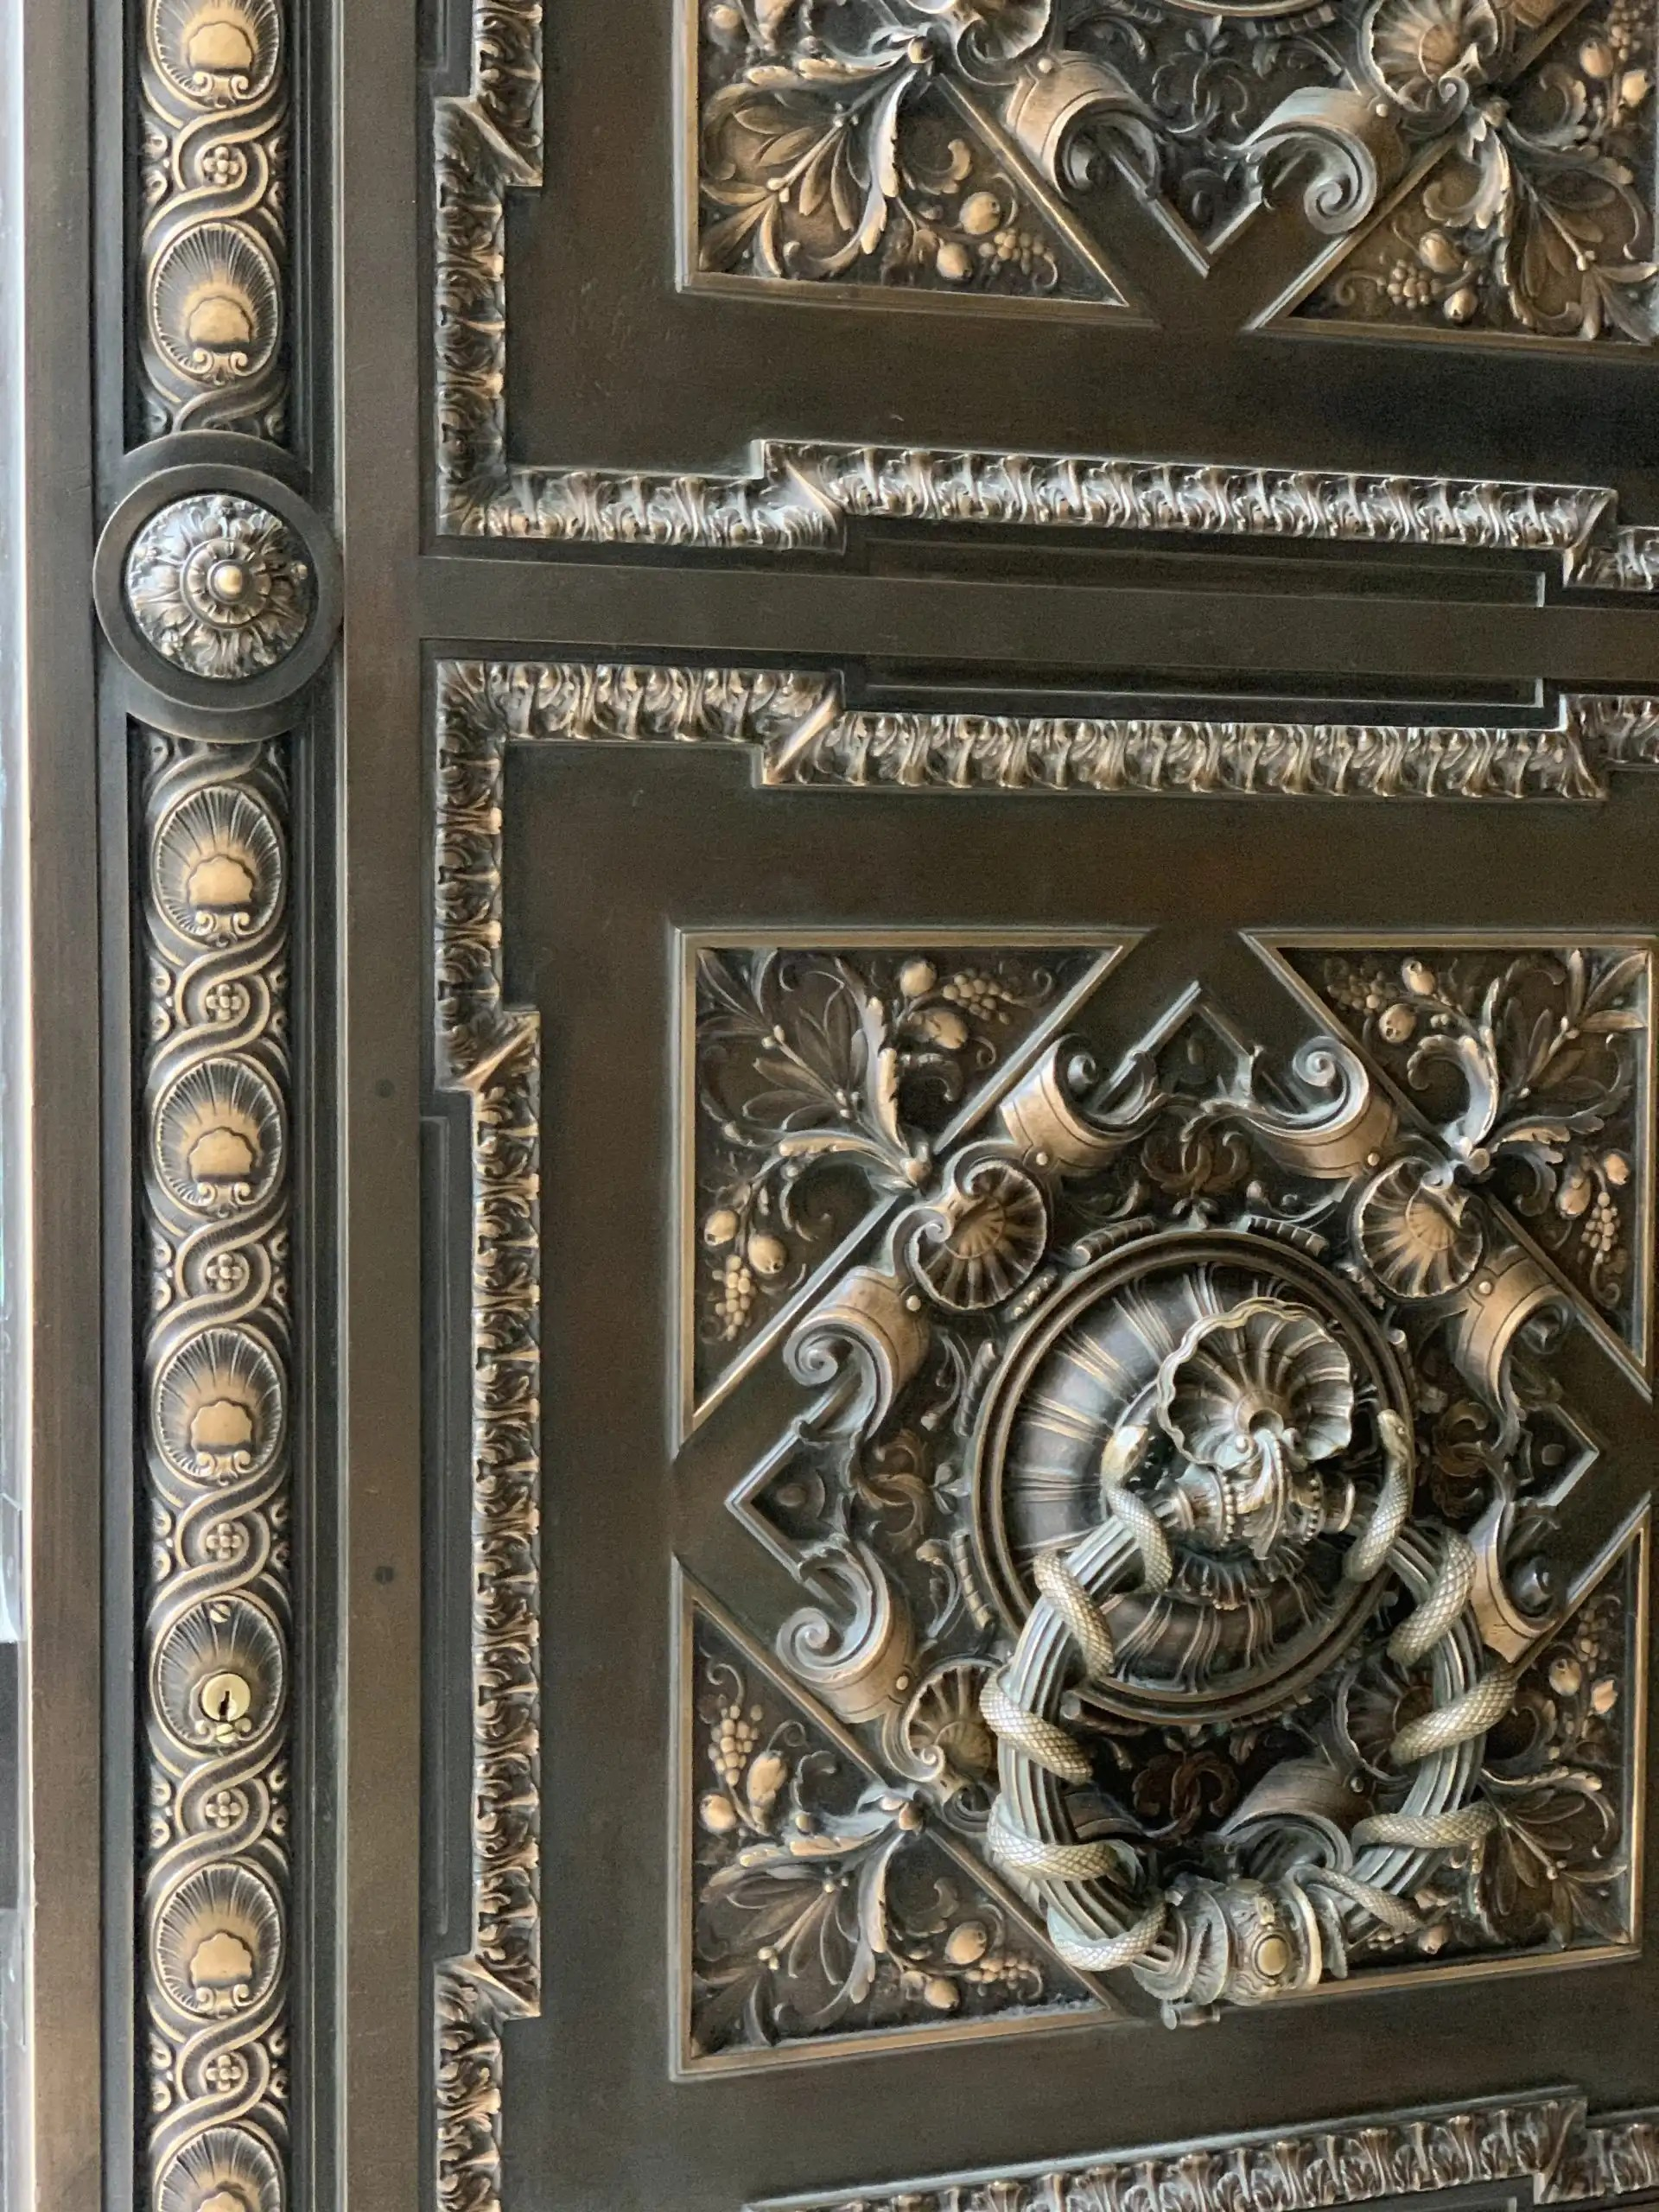 iPhone XS Max photography example: doors of New York Public Library